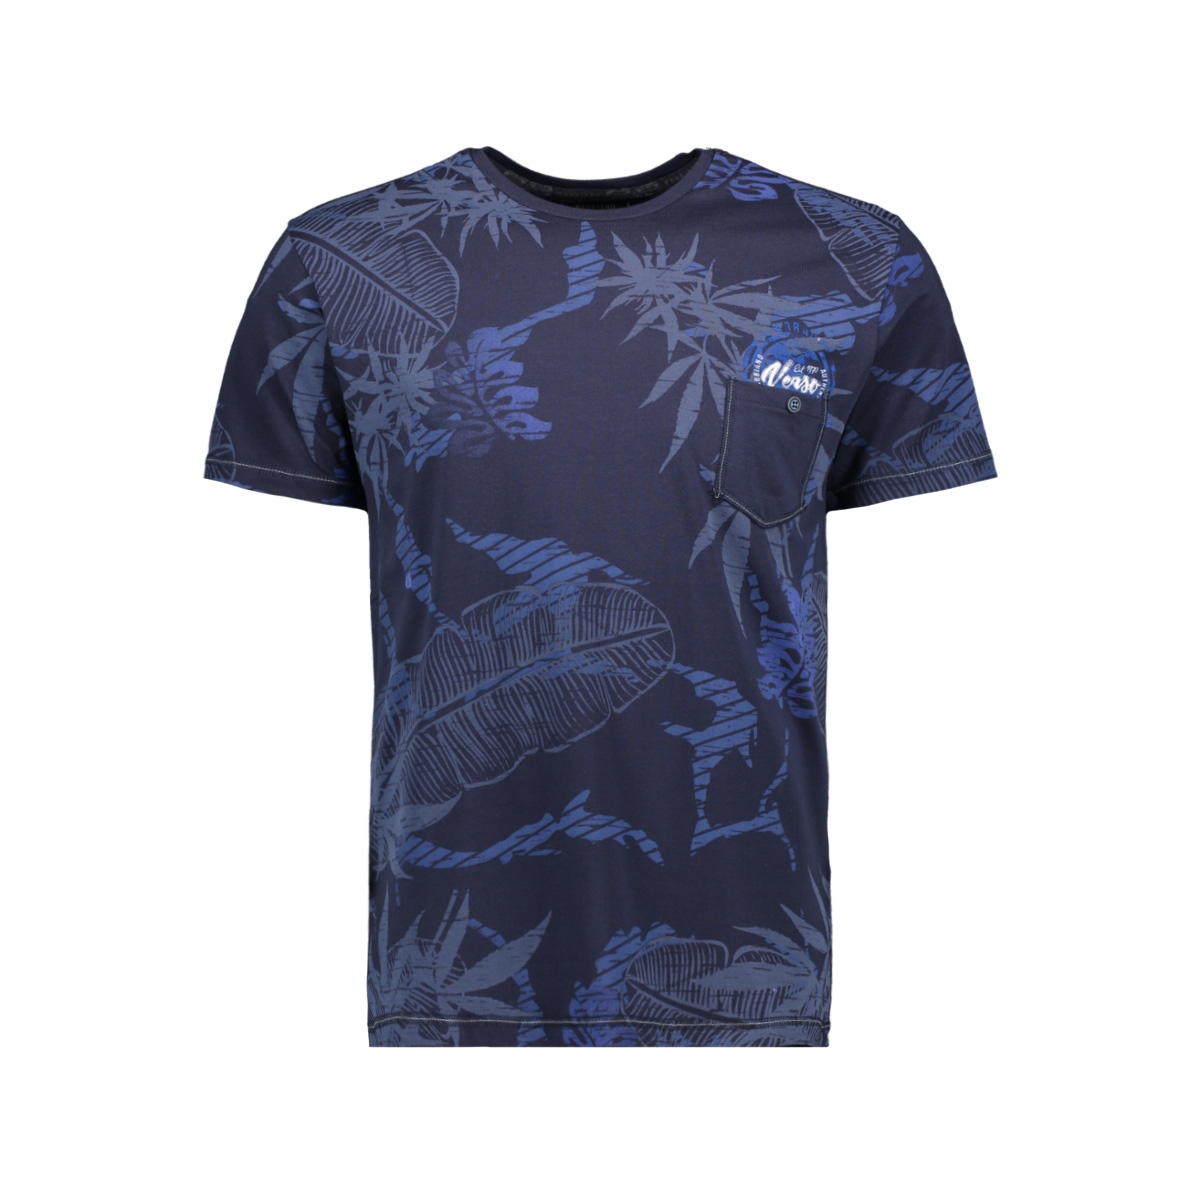 t shirt 15149 gabbiano t-shirt navy